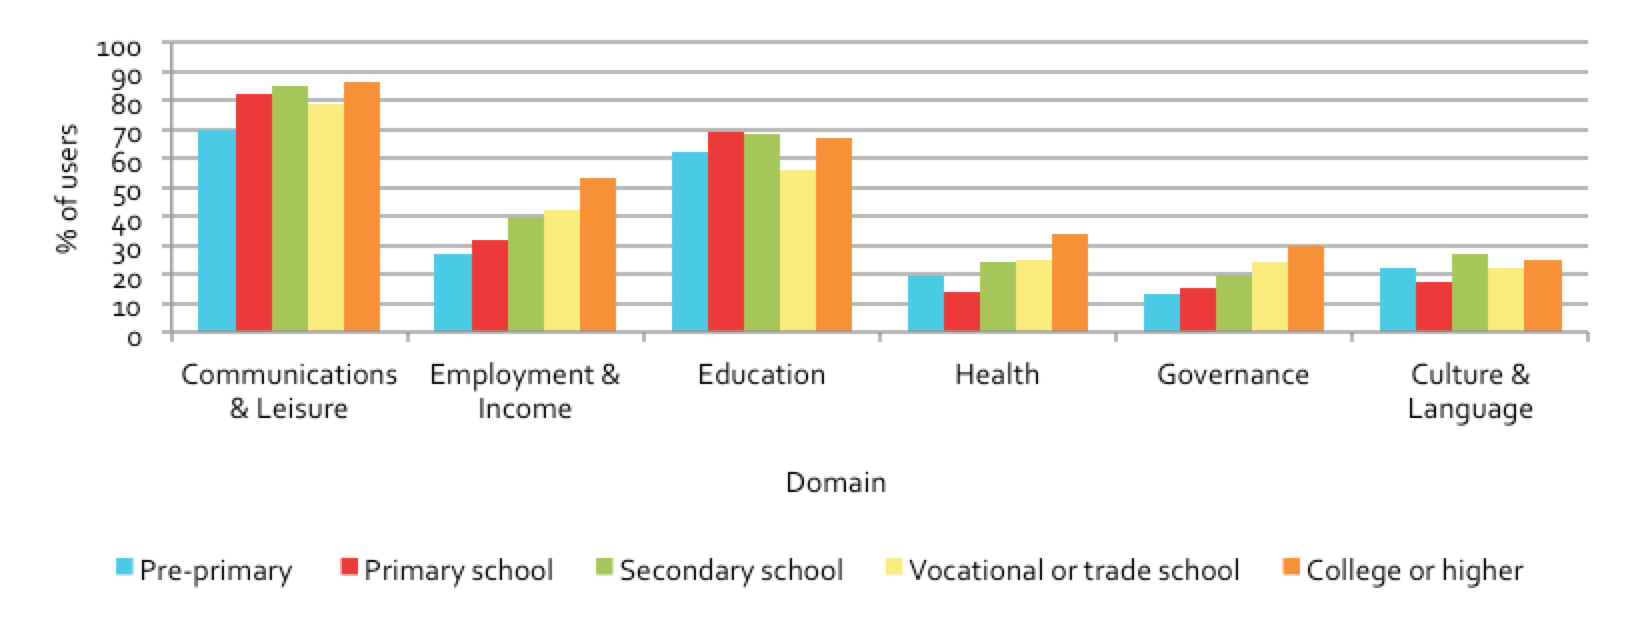 Figure 5.19: Public access usage, by education level and domain